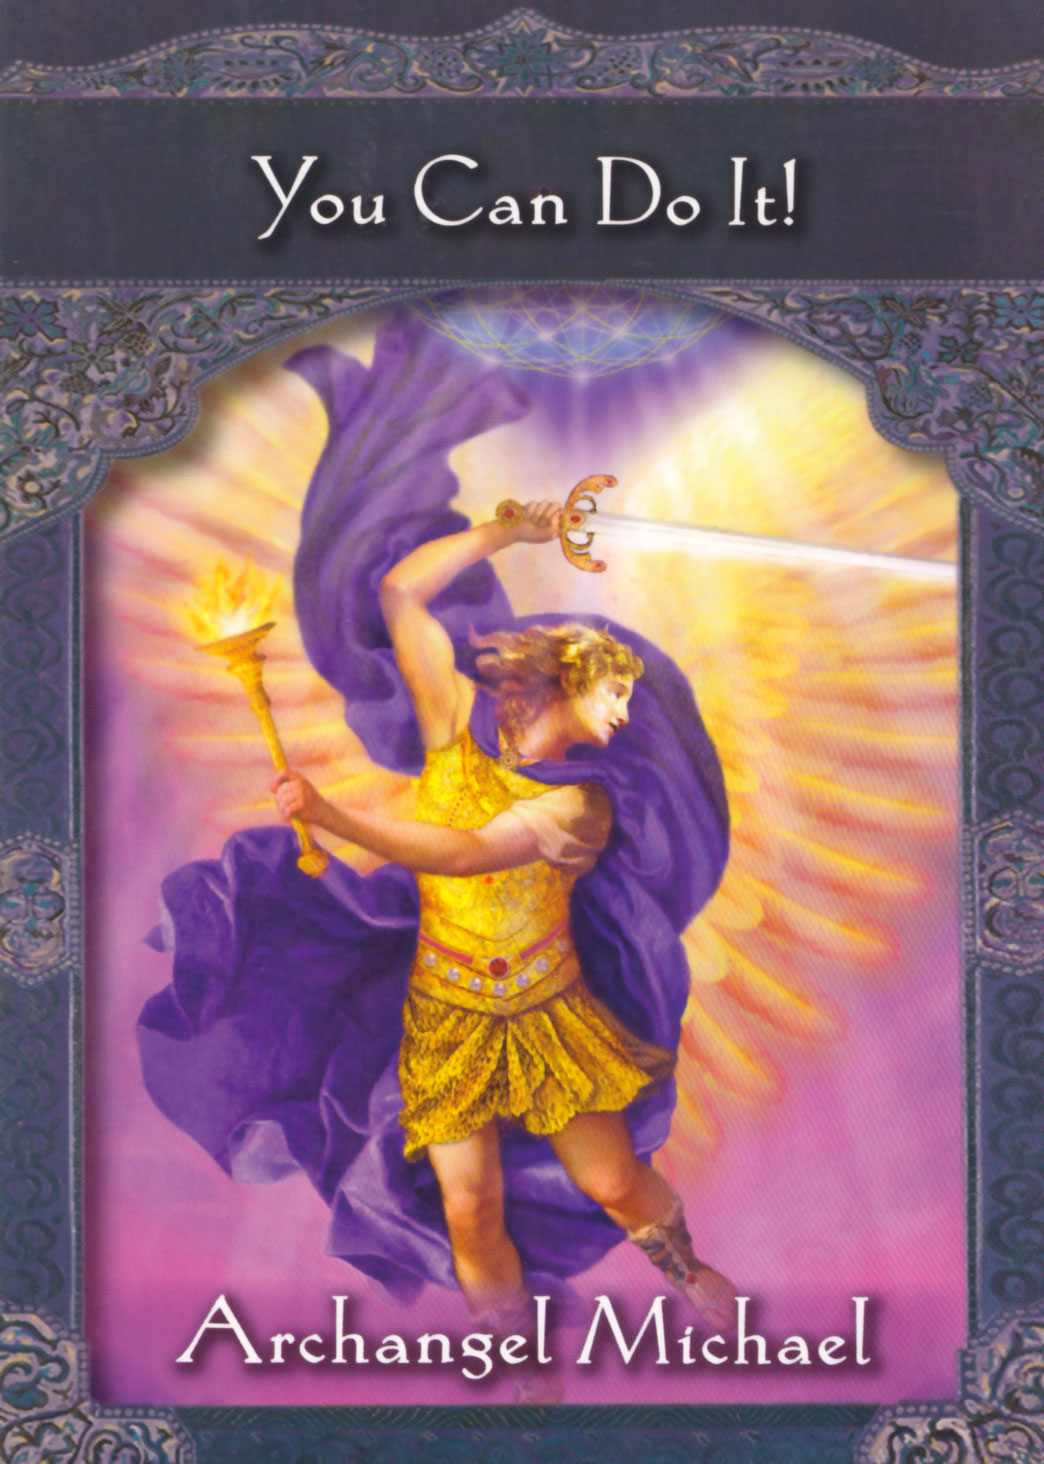 Can You Read Your Own Tarot Cards: You Can Do It! Archangel Michael